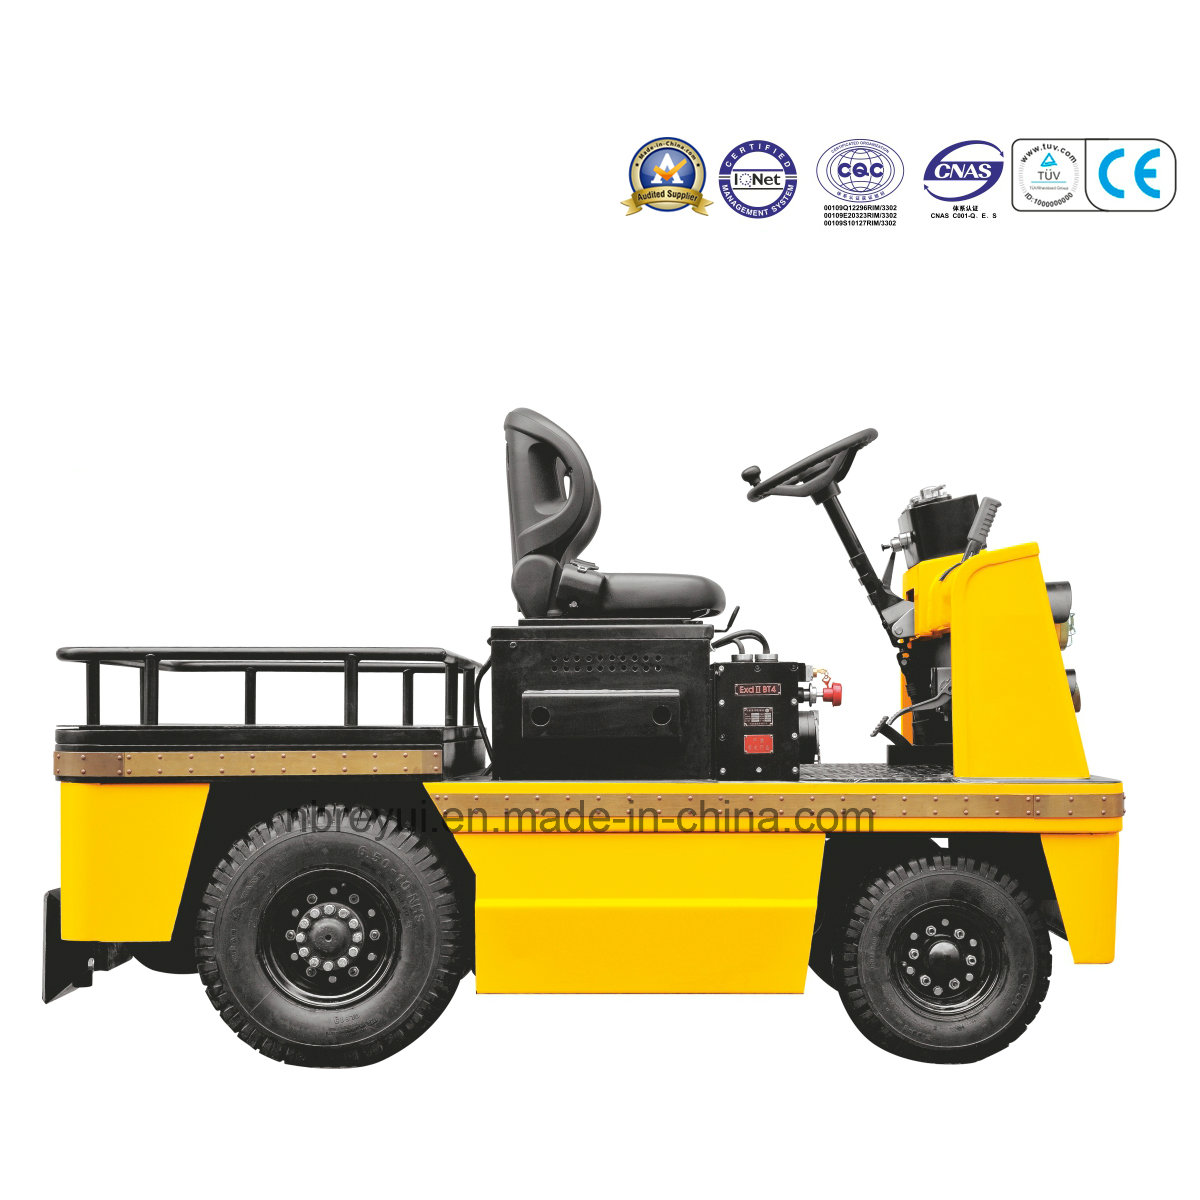 explosion-proof tractor